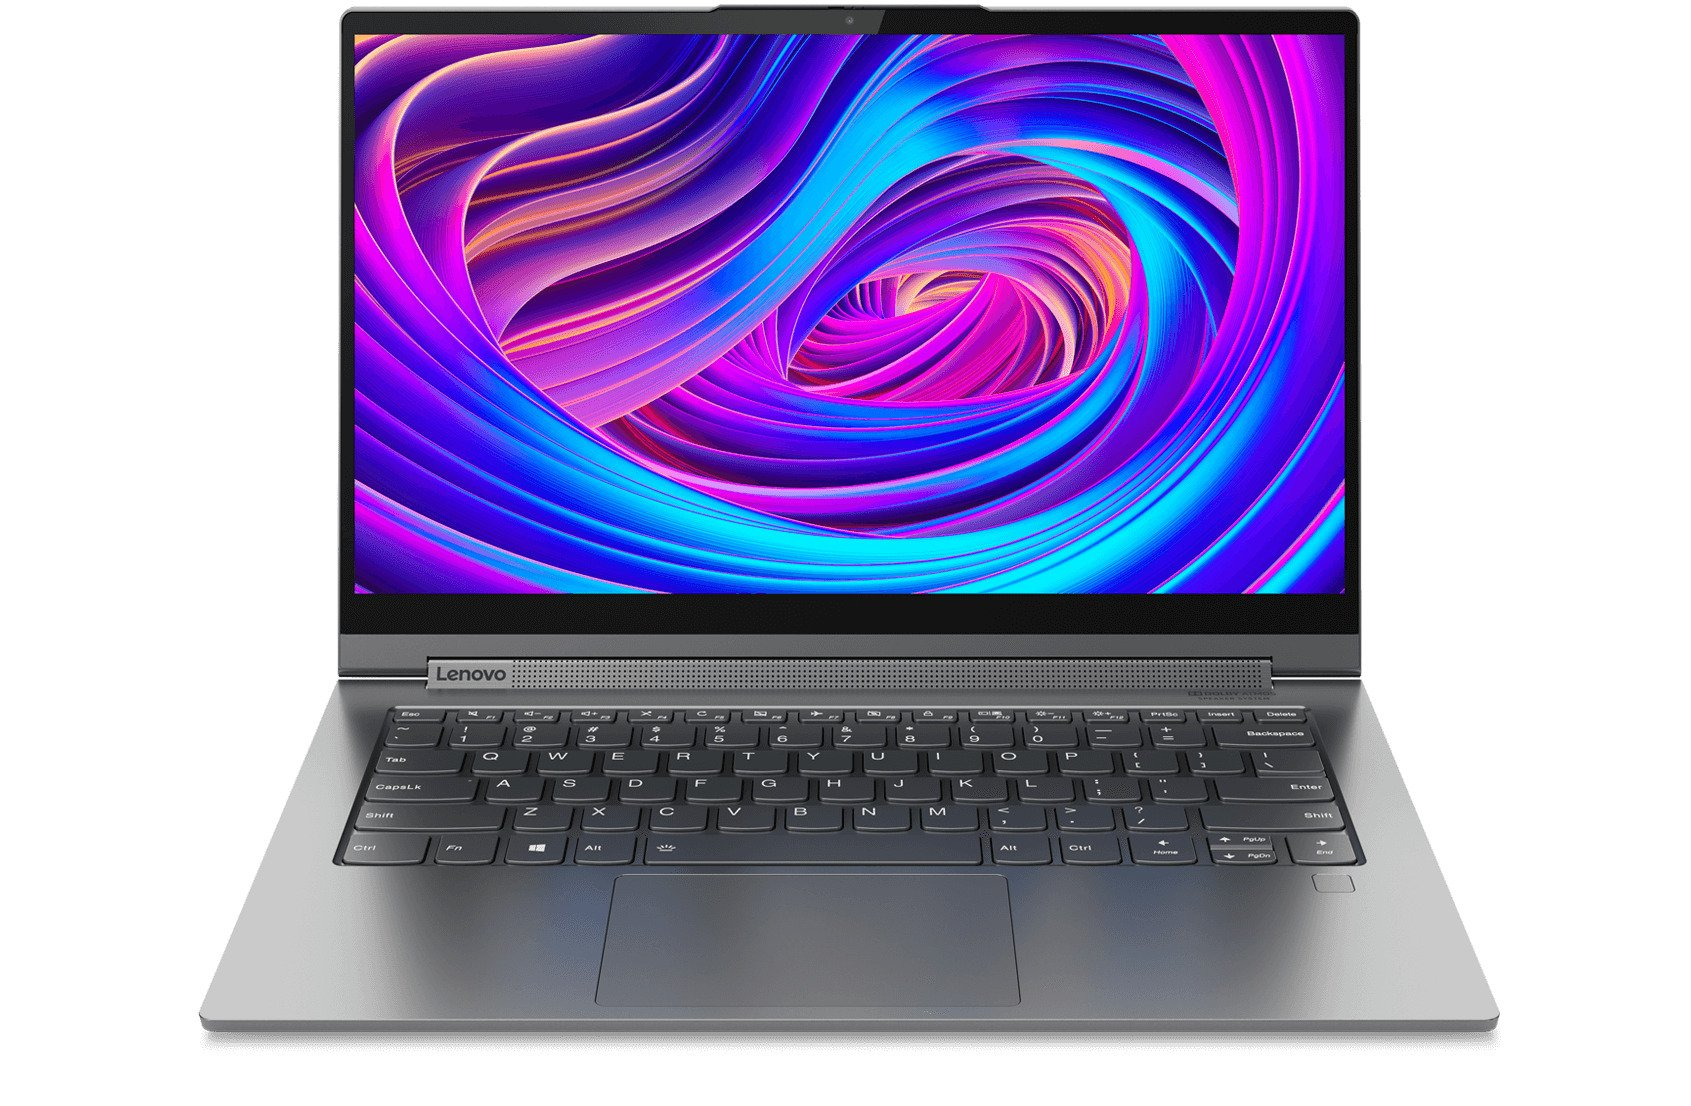 Lenovo YOGA C940-14 (Iron Grey, Aluminium)